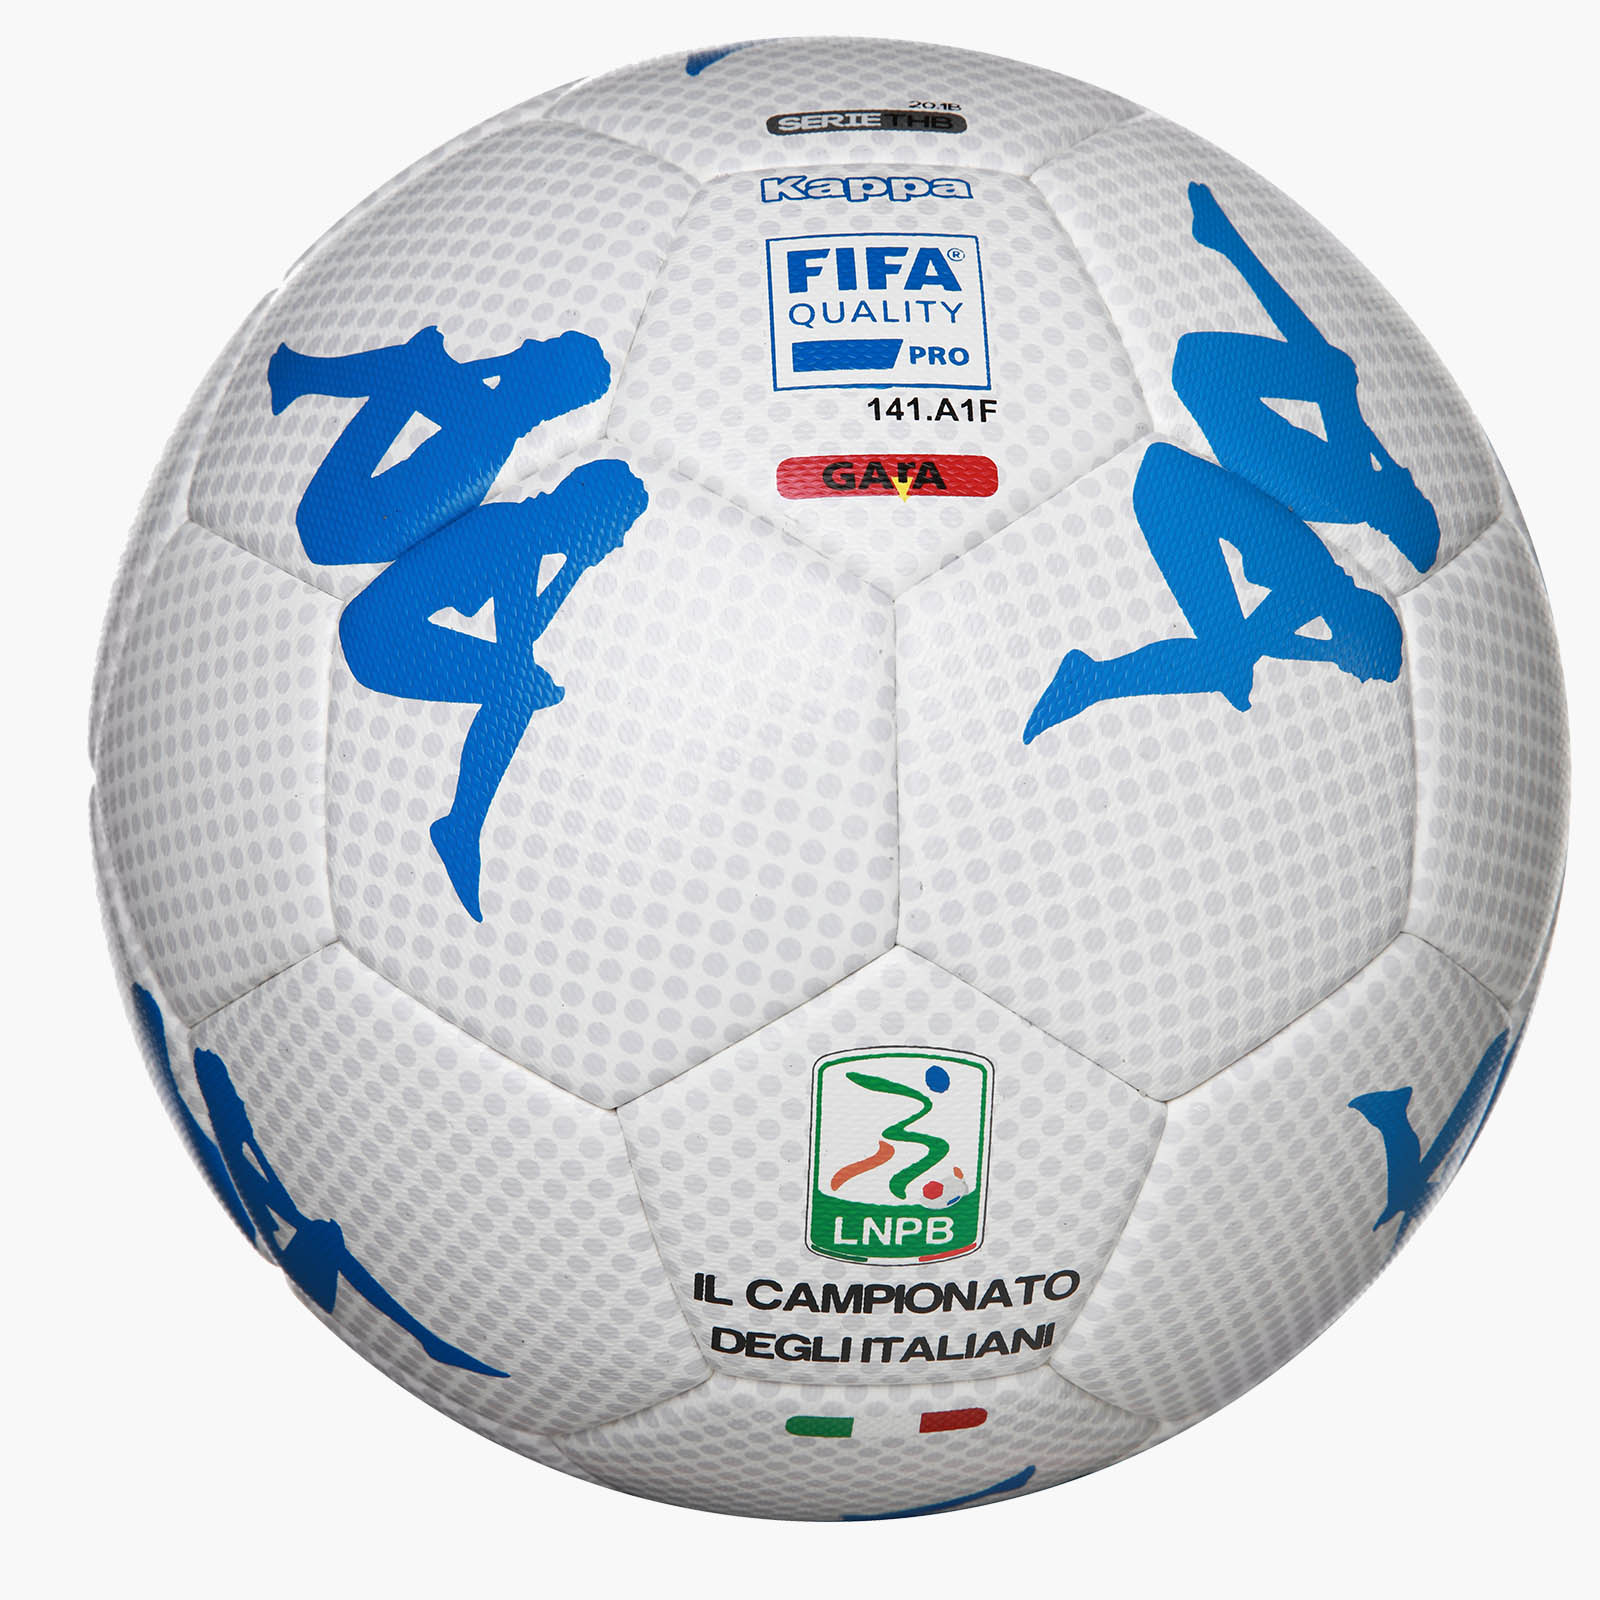 7d157ba497 Kappa Serie B 2017-18 Official Match Ball – Forza27